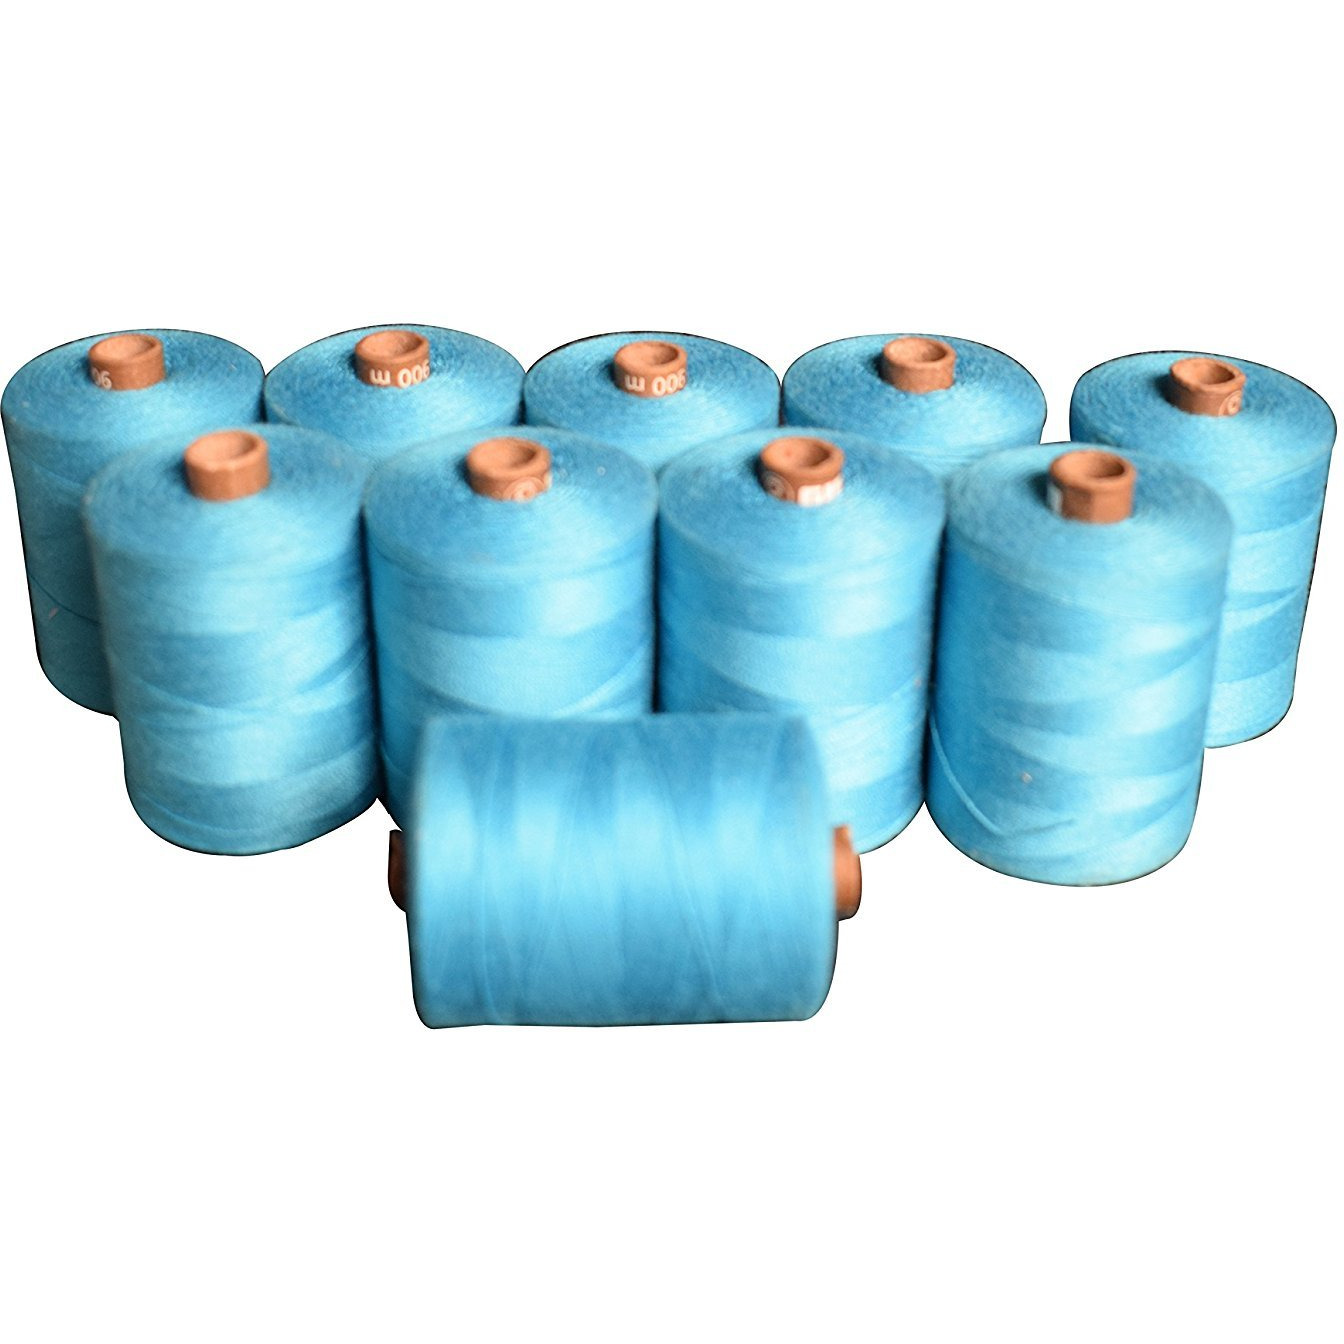 Winmaarc Polyester Thread Sets - 900 Yard Spools Connecting Threads Set of 10